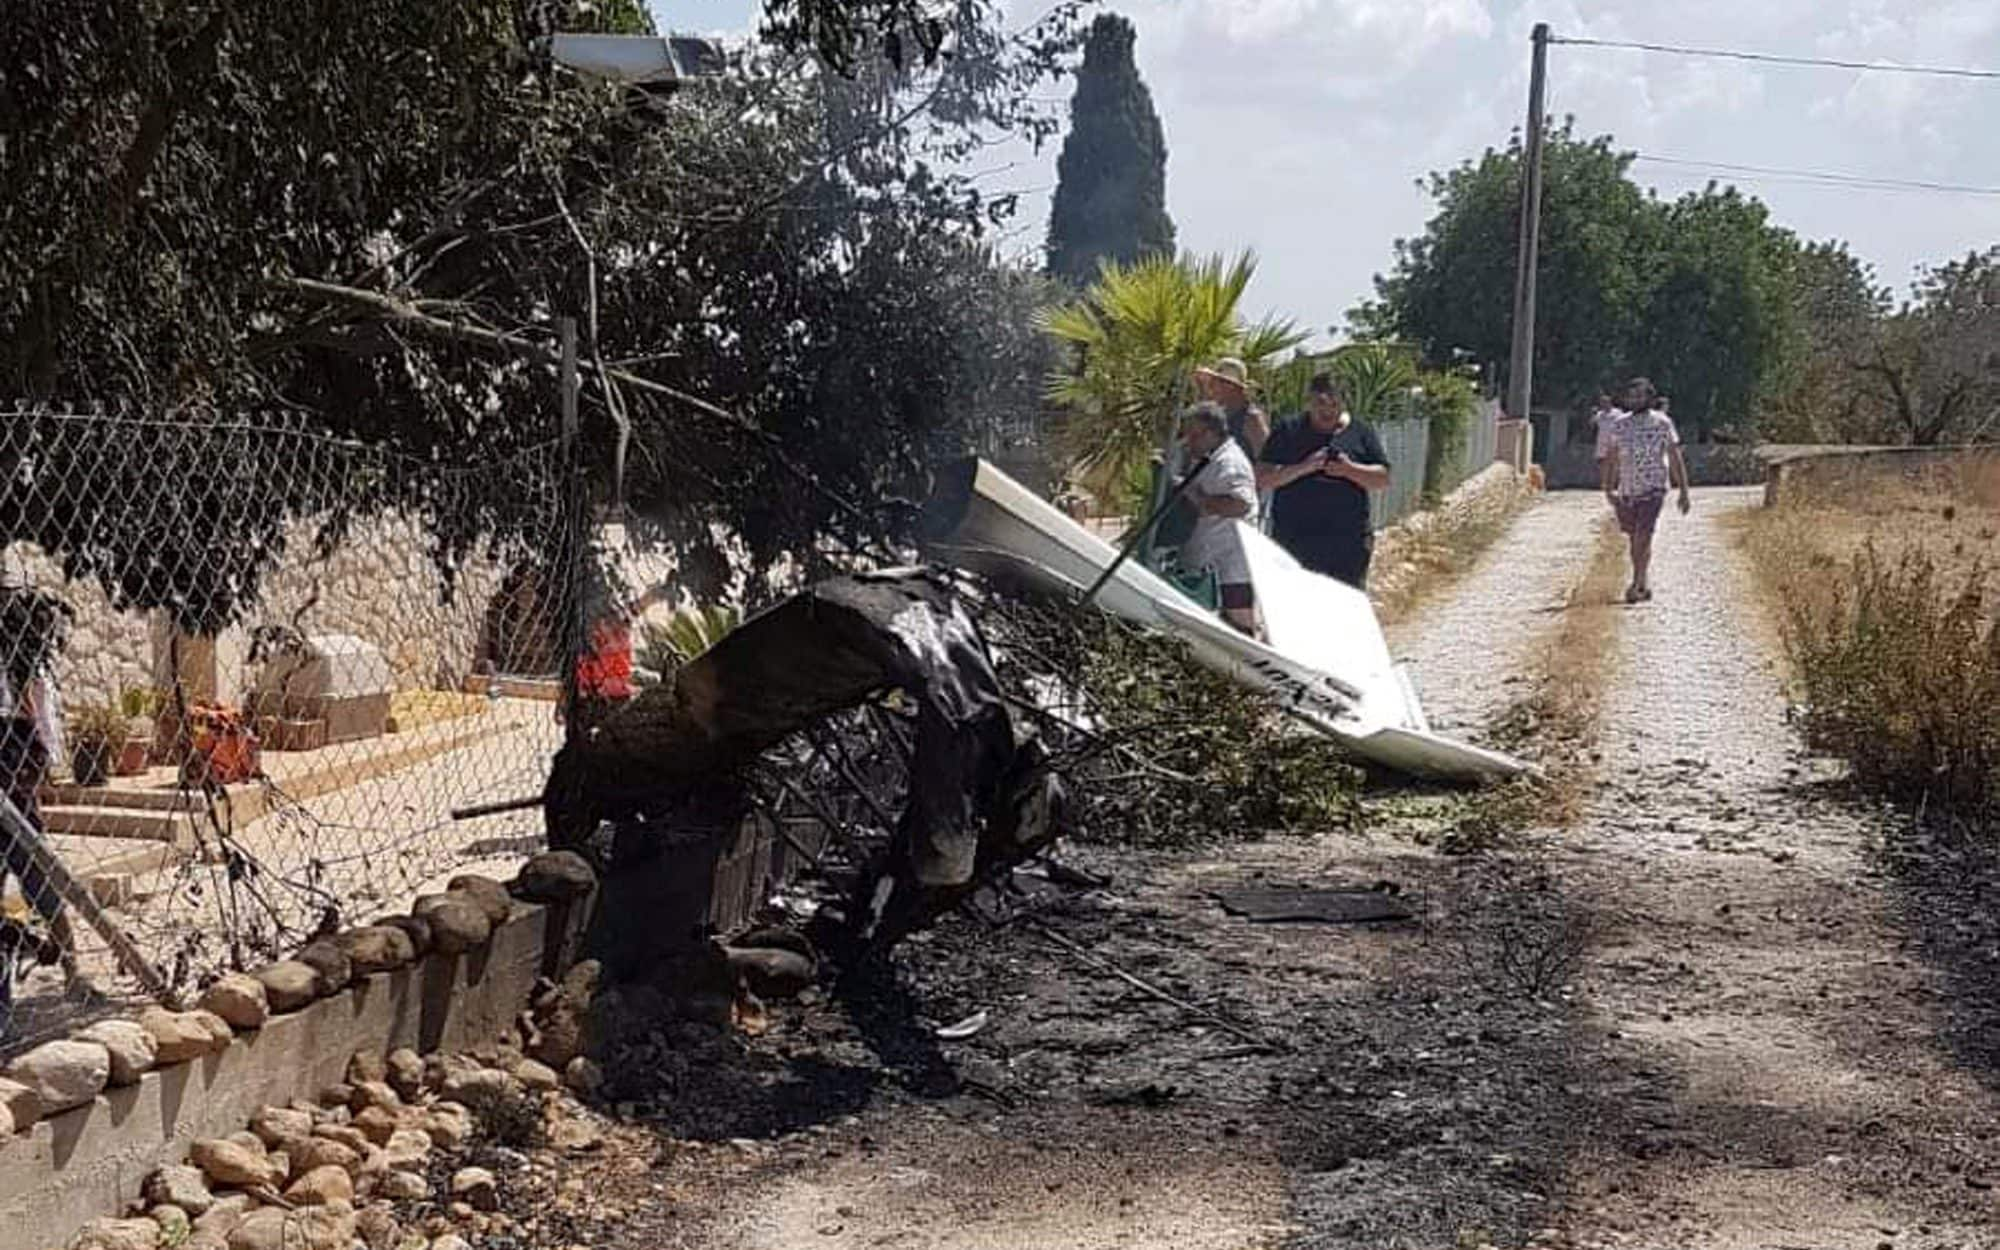 Seven dead in Majorca air crash as sightseeing helicopter collides with ultralight plane